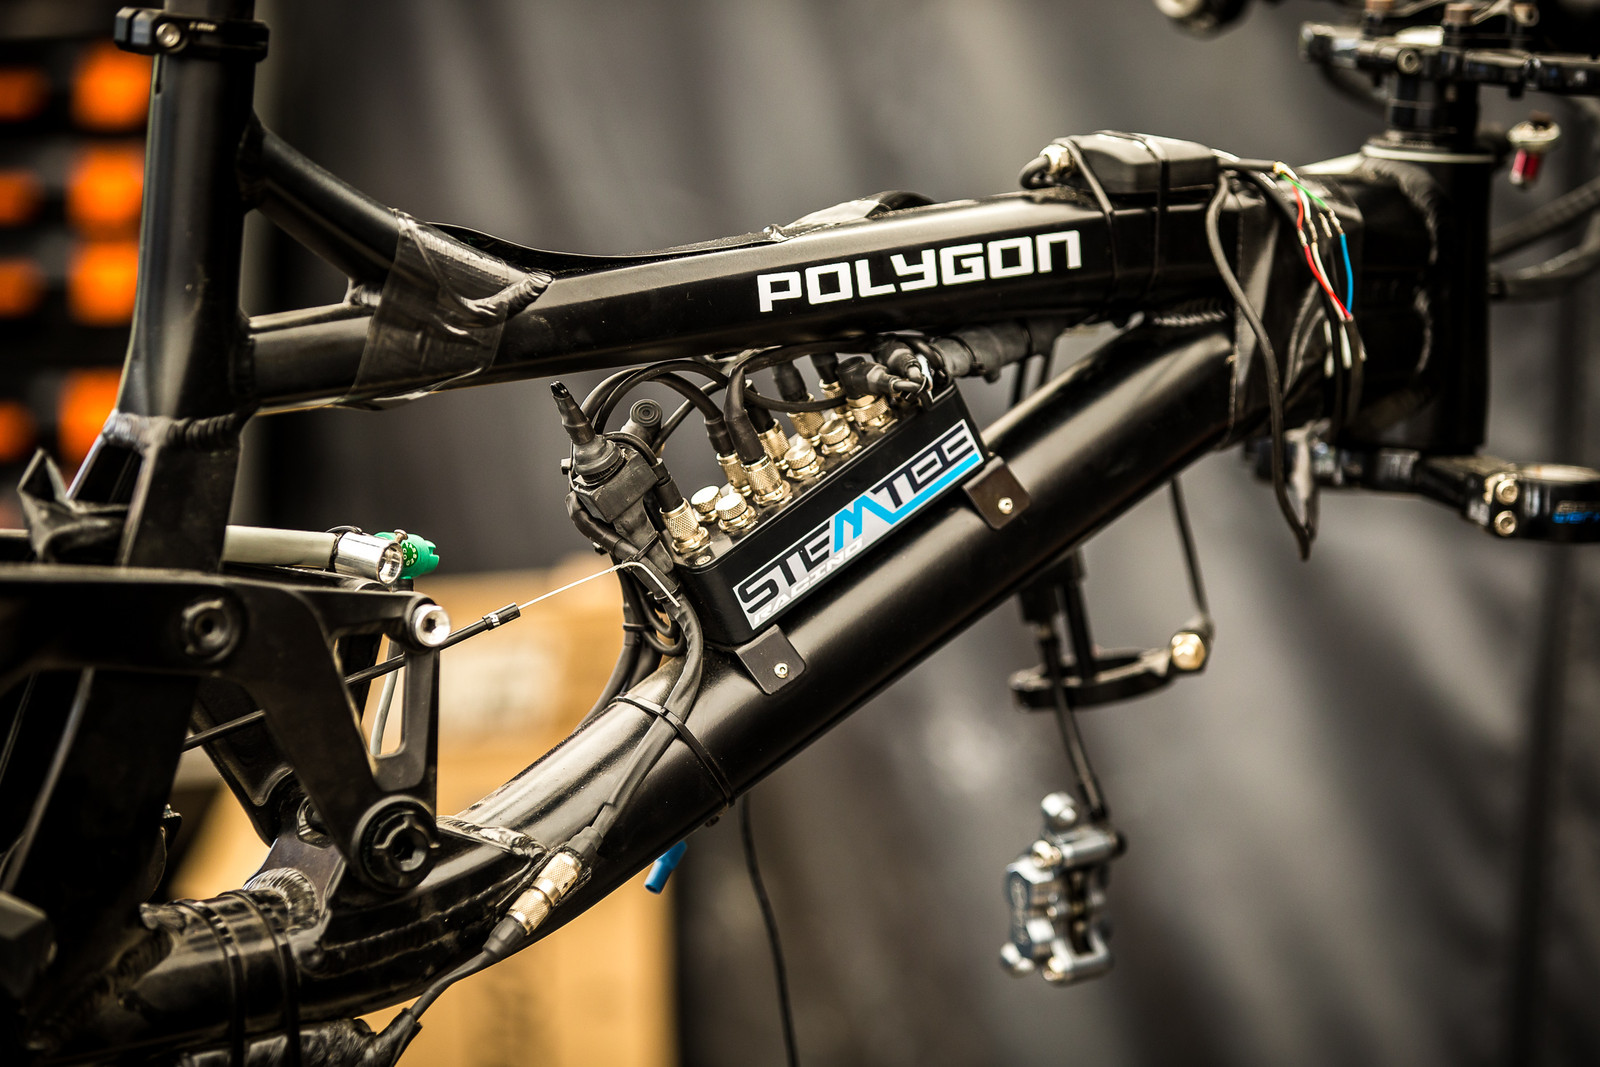 Telemetry on Fayolle's Polygon DH9 - 2017 Leogang World Cup Pit Bits - Mountain Biking Pictures - Vital MTB